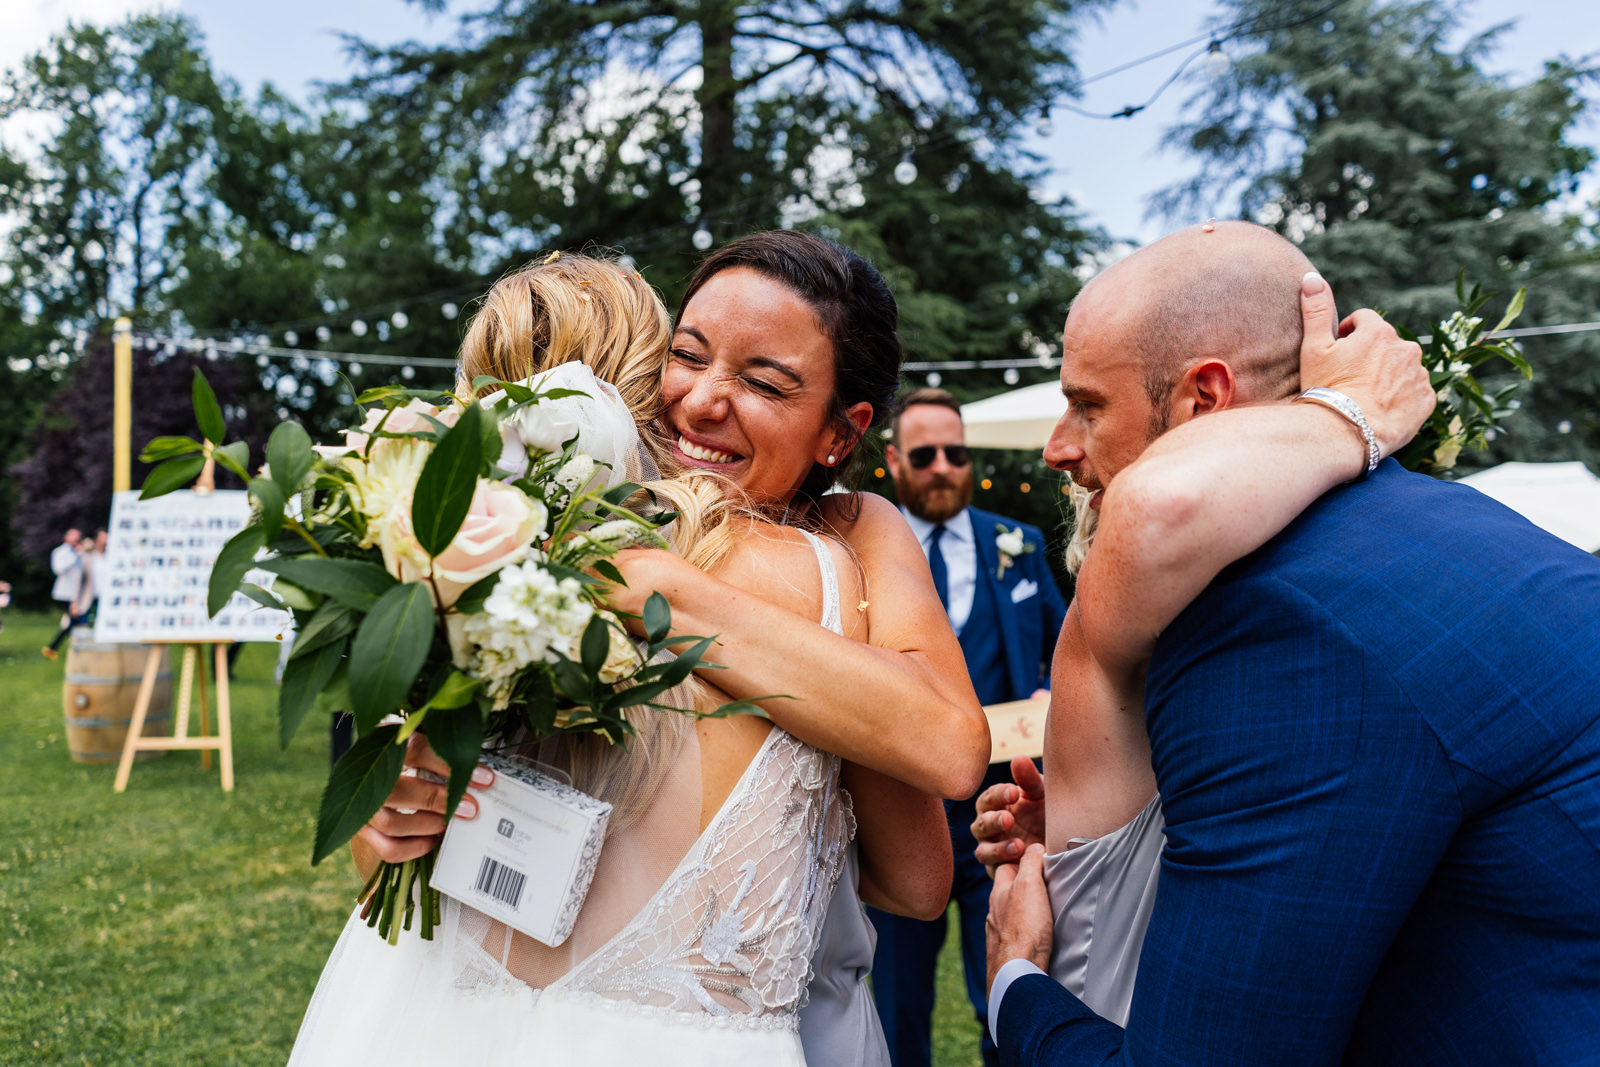 guests congratulate newly married couple